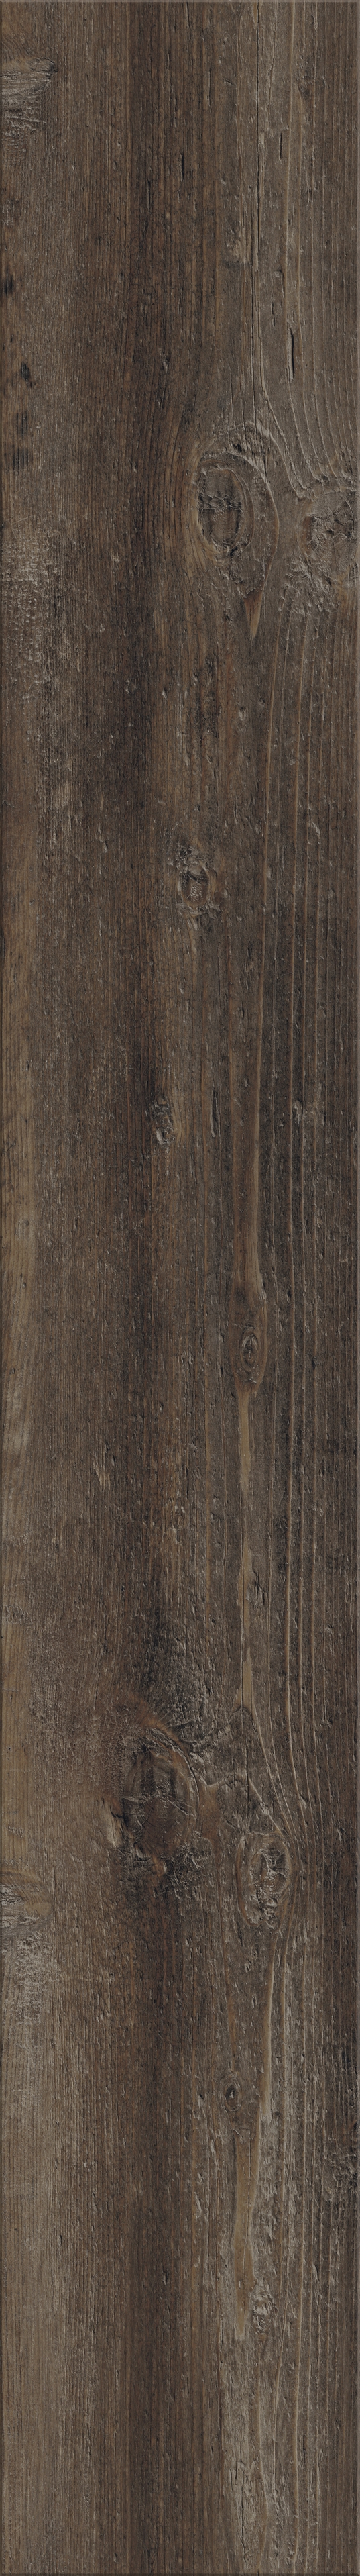 Kronotex dynamic plus scotch pine d 4774 from kronotex for Kronotex laminate